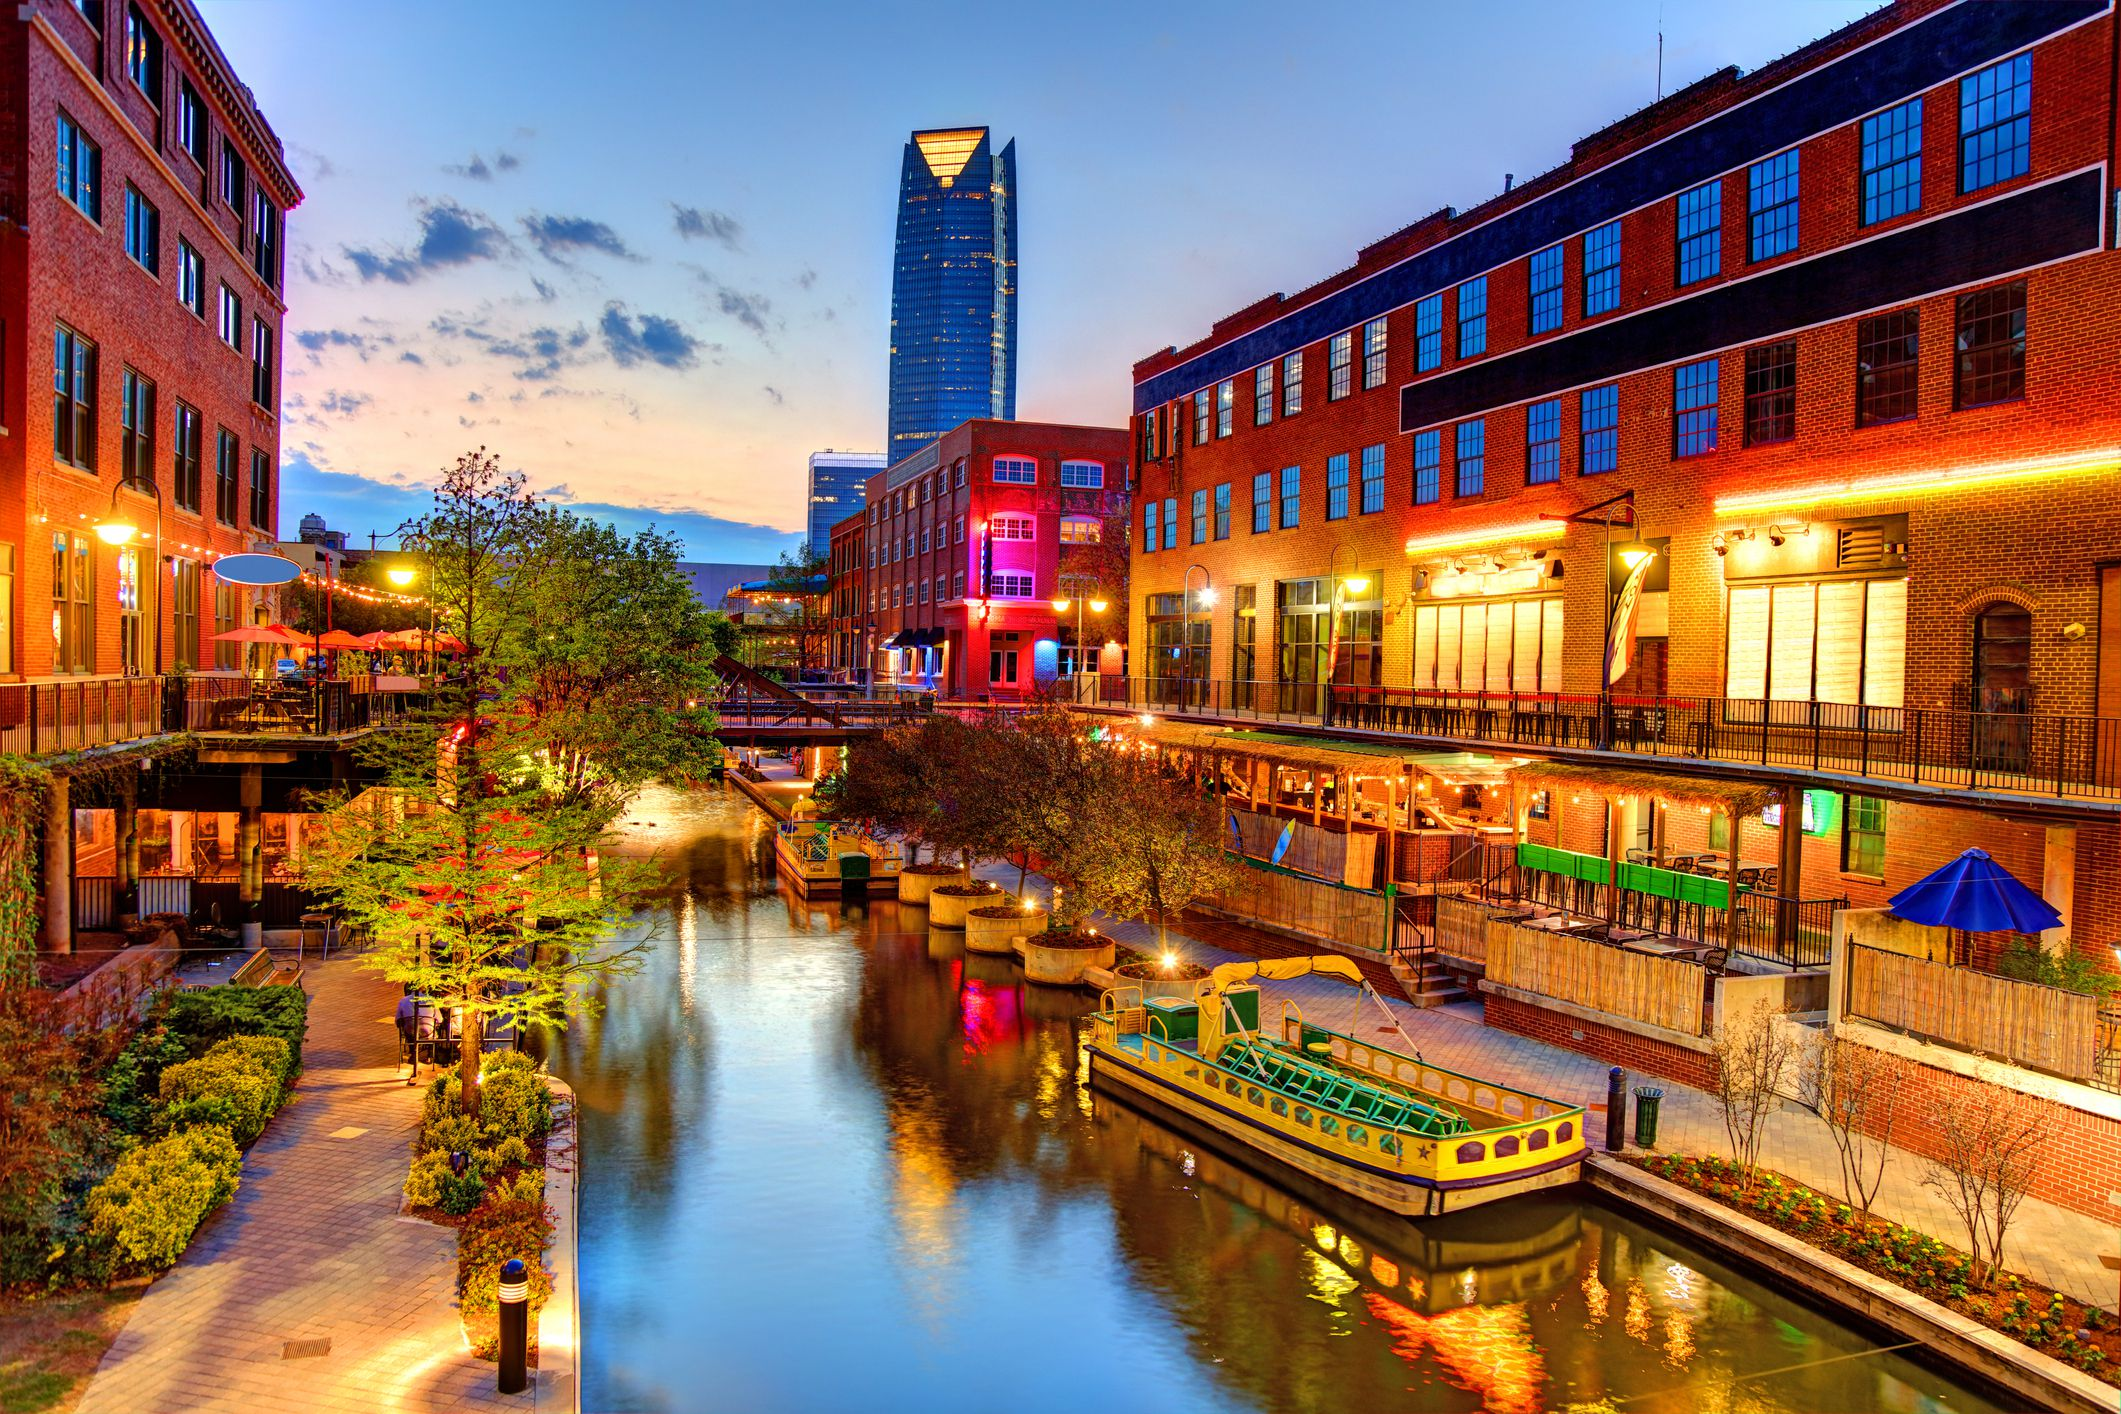 The Bricktown C in Oklahoma City on